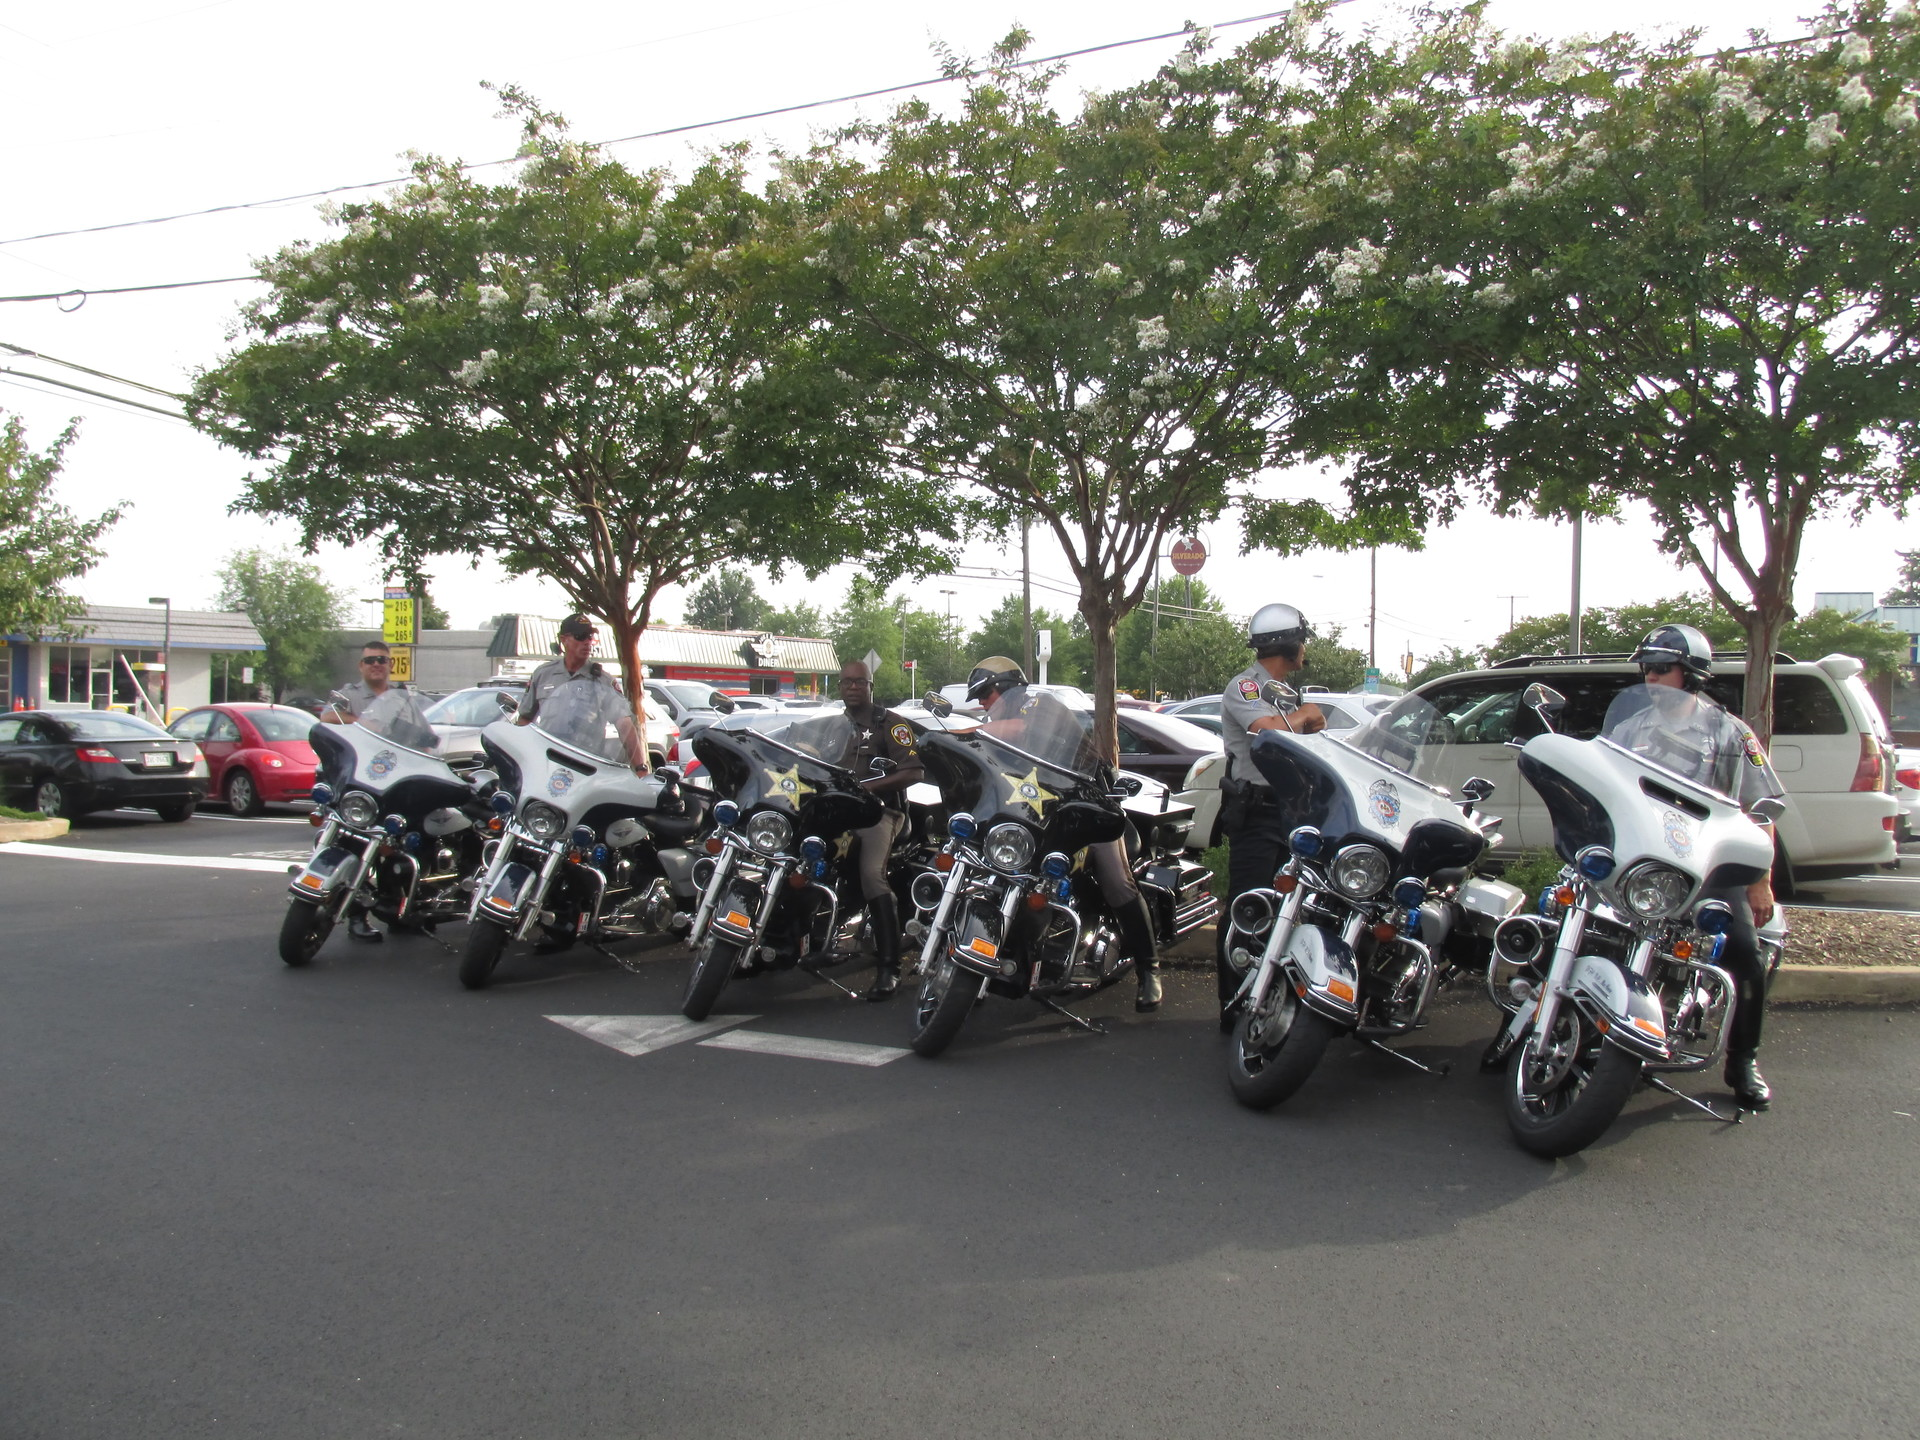 Police Motorcycle Squad